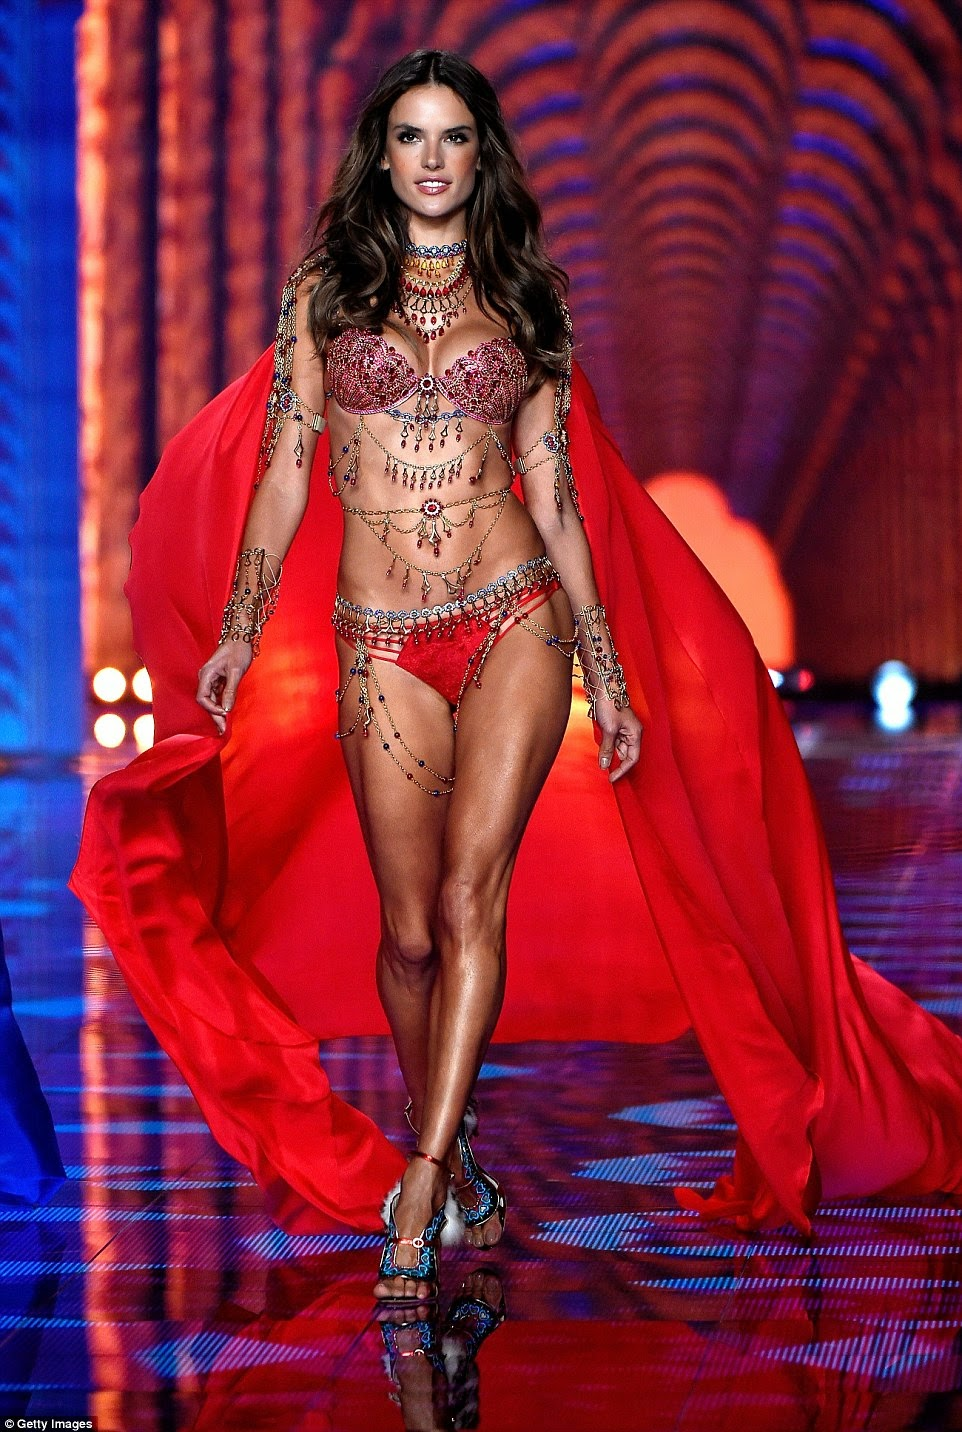 56ba4a945c ... Fashion Show 2014  Stunning Models Struts Their Stuff On The Greatest  Catwalk On Earth! +  2m Dream Angels Fantasy Bras. Angels Alessandra  Ambrosio and ...